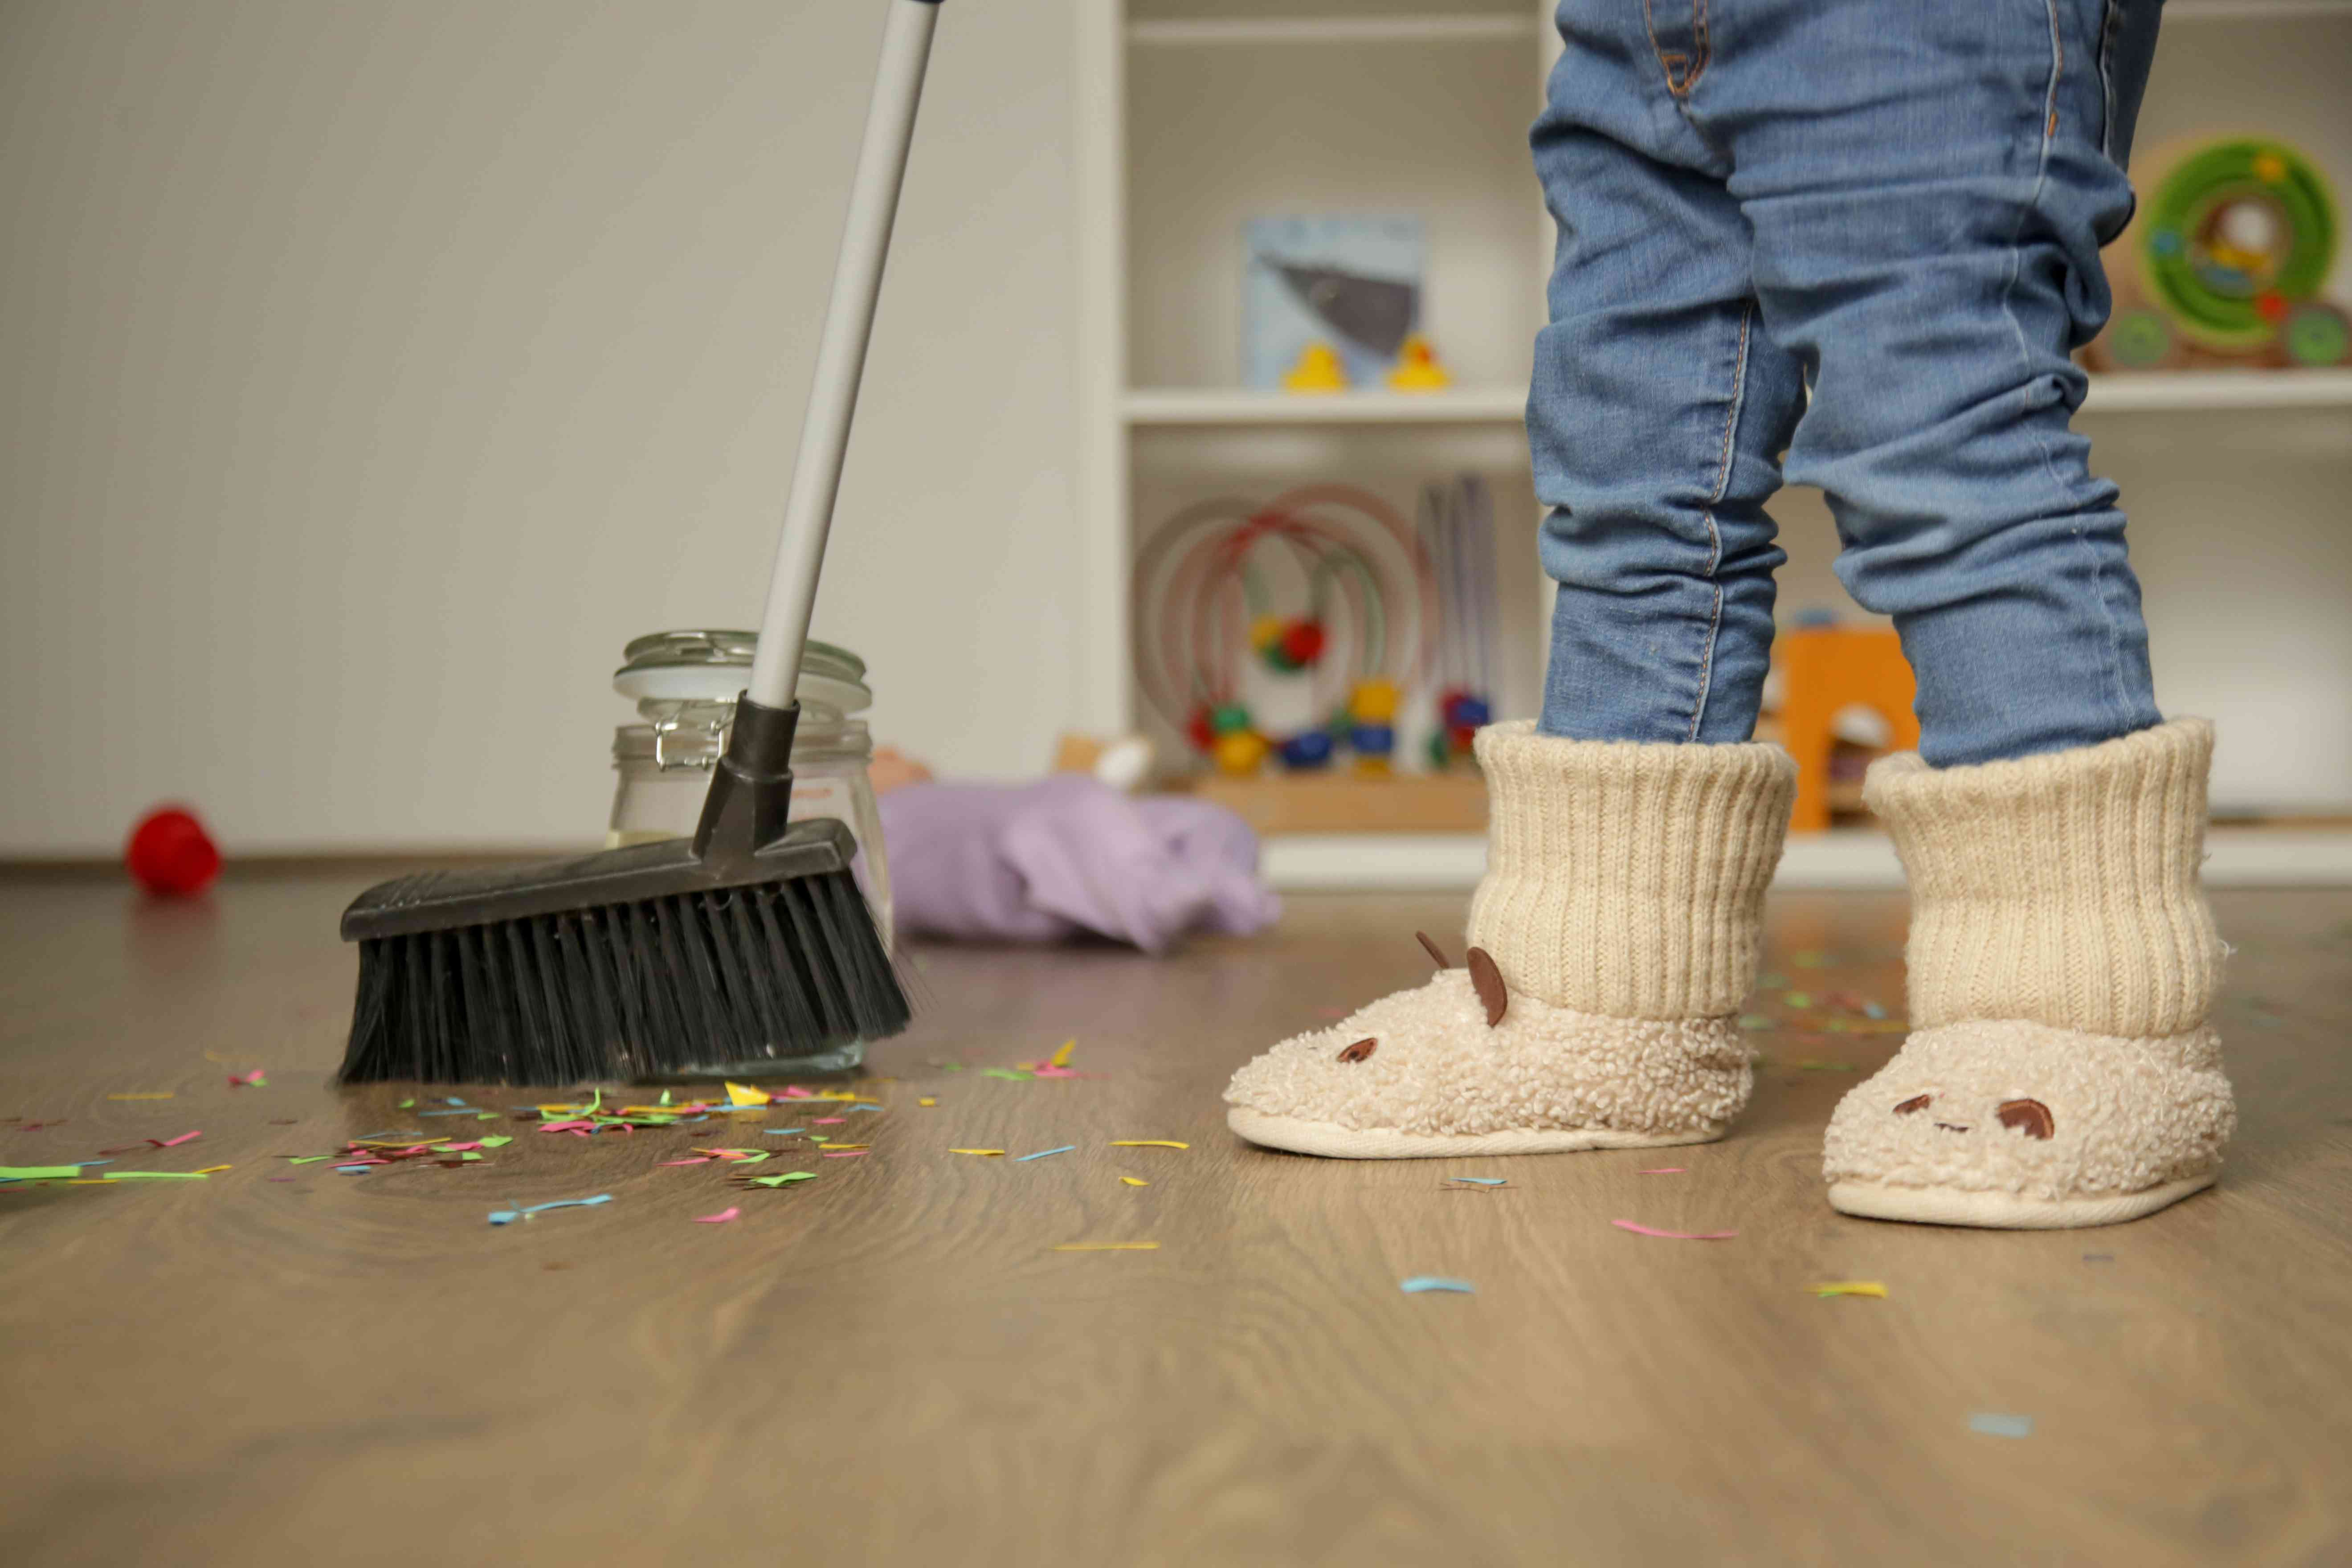 Adorable blonde toddler girl playing with broom, cleaning colorful confetti from the floor